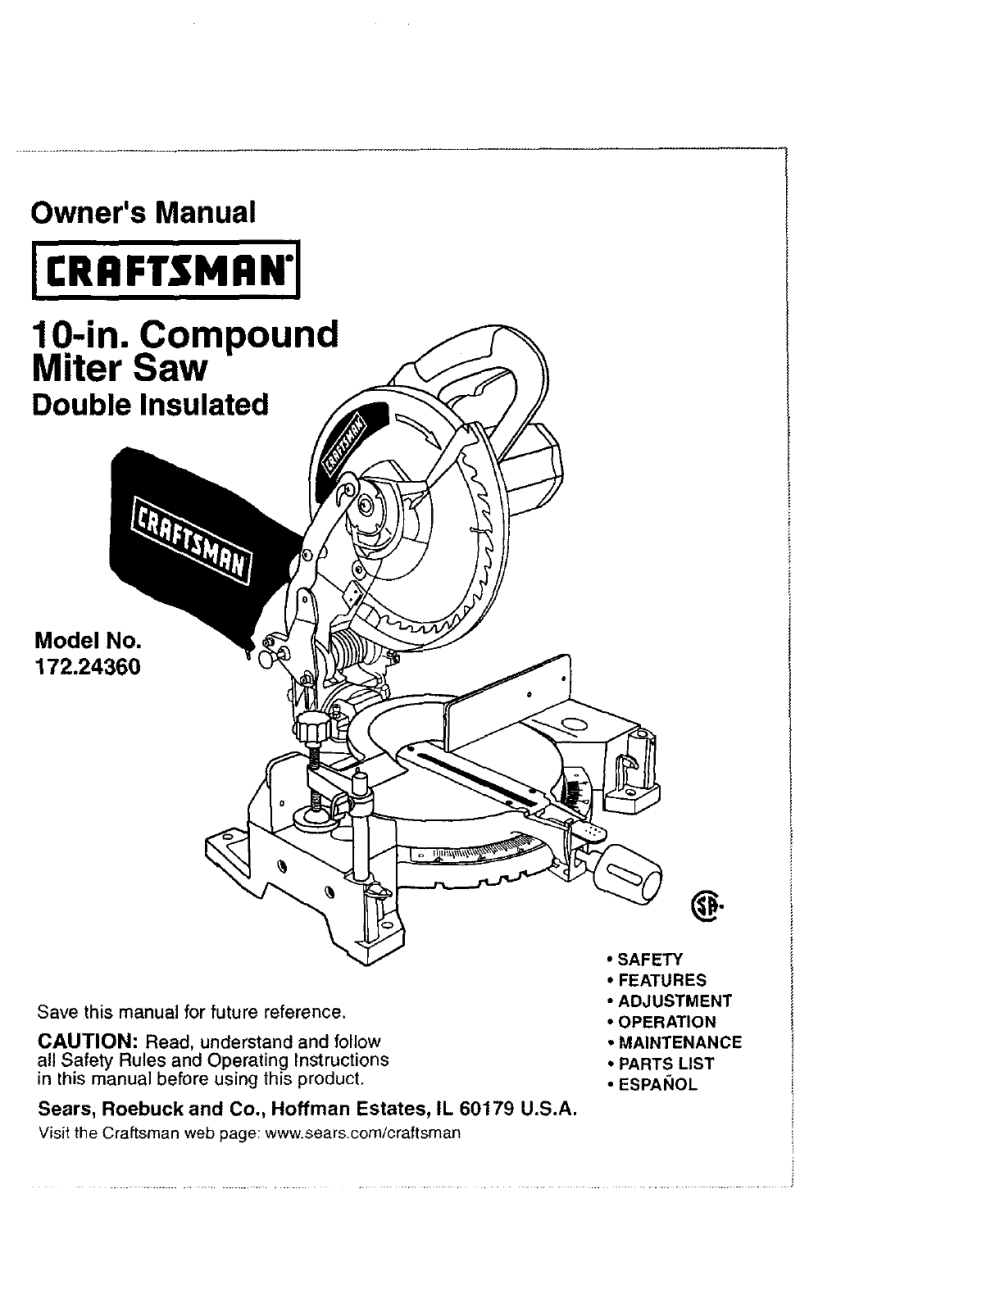 medium resolution of craftsman 17224360 user manual 10 compound miter saw manuals and guides l0408143